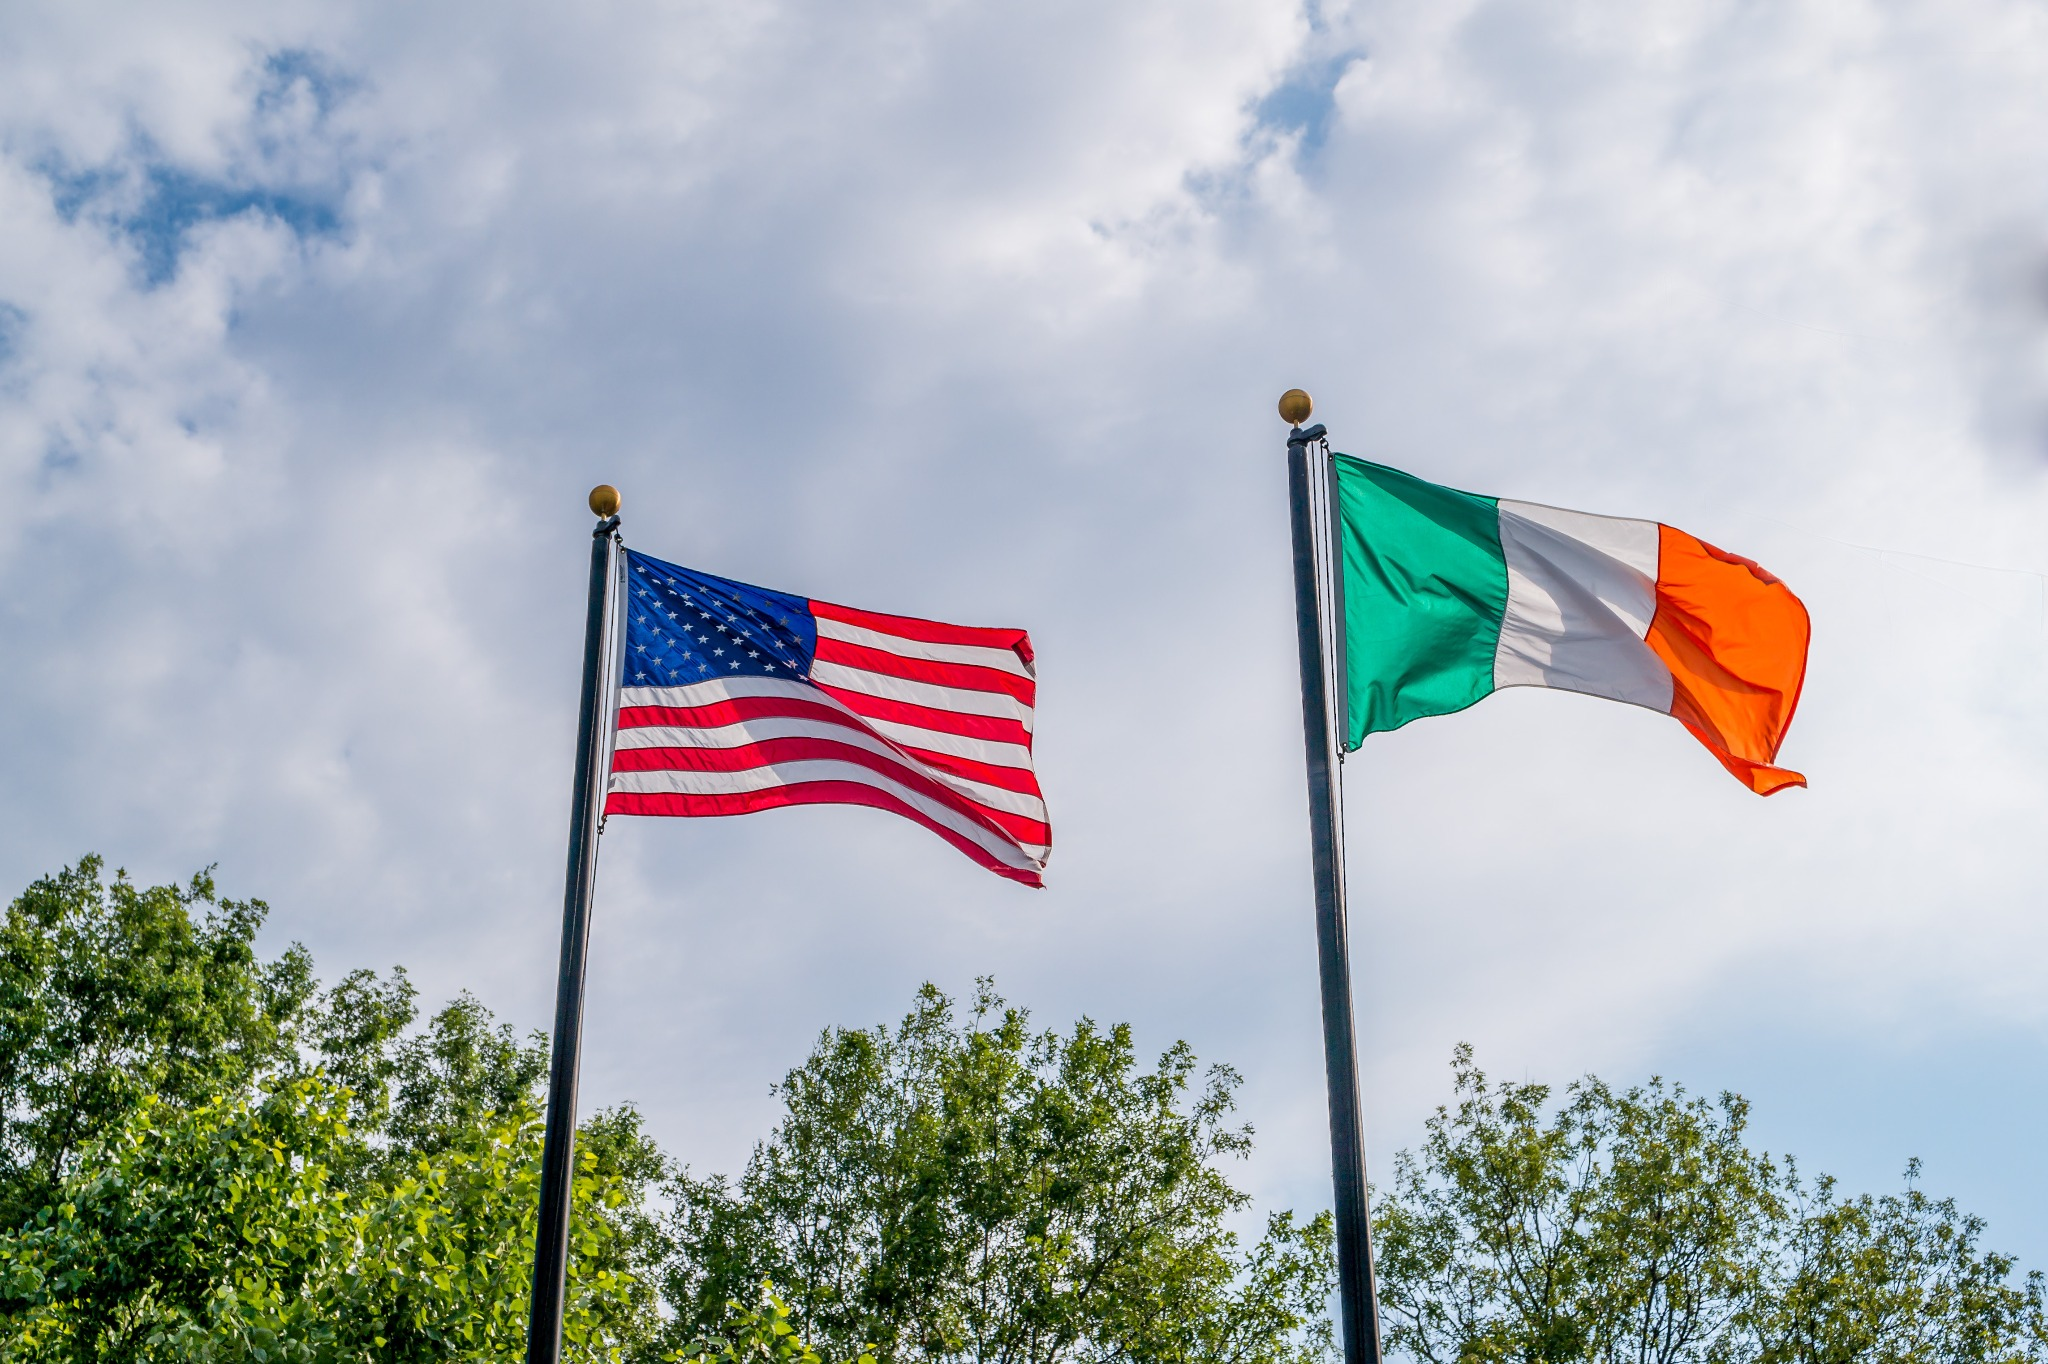 The American flag and Irish flag flying next to each other to celebrate Irish-American heritage.